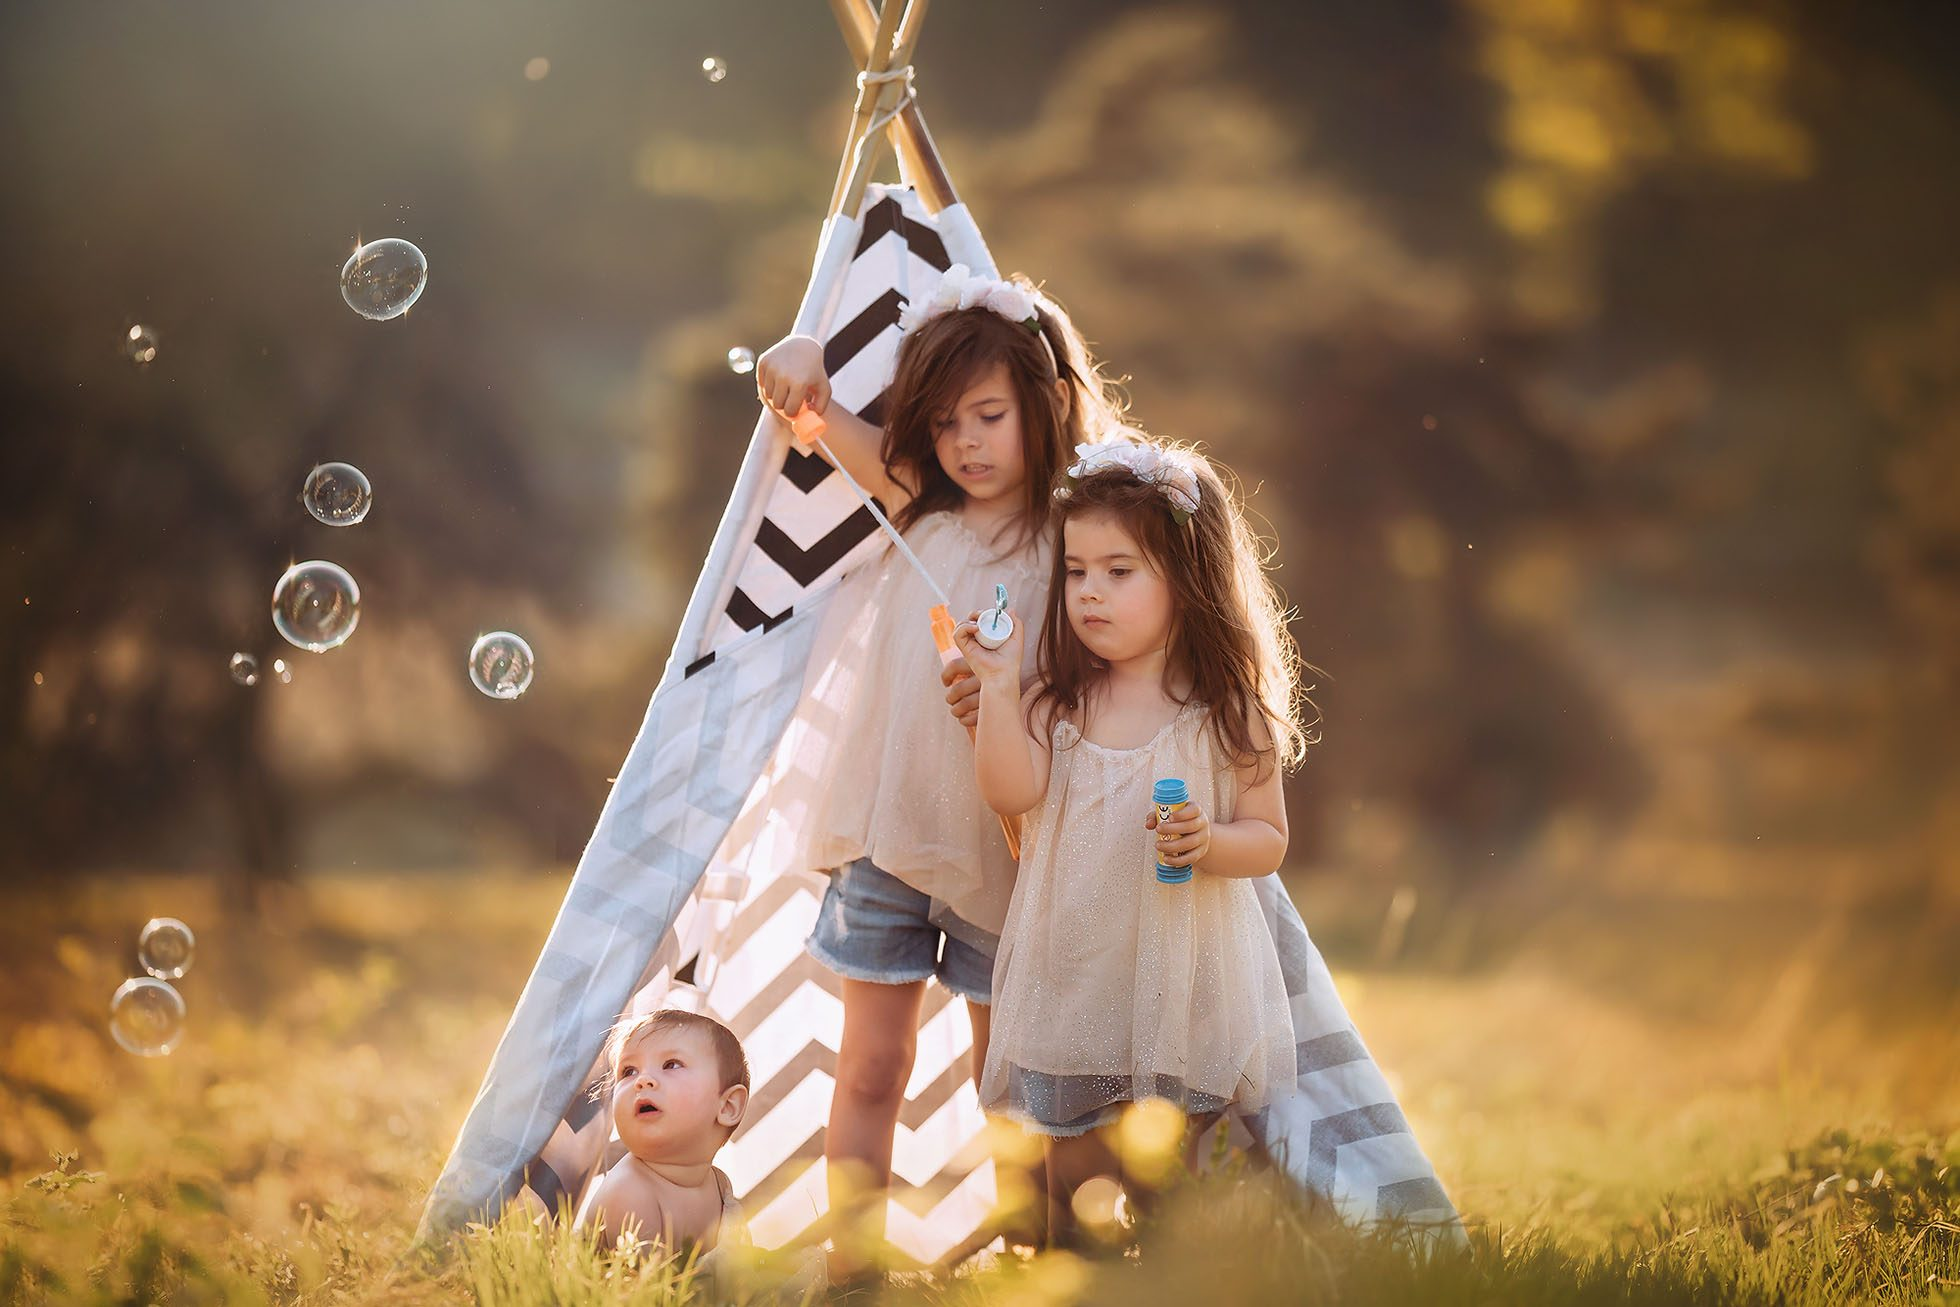 Sony fine art color portrait of three little girls blowing bubbles in front of a tipi in the forest by Willie Kers